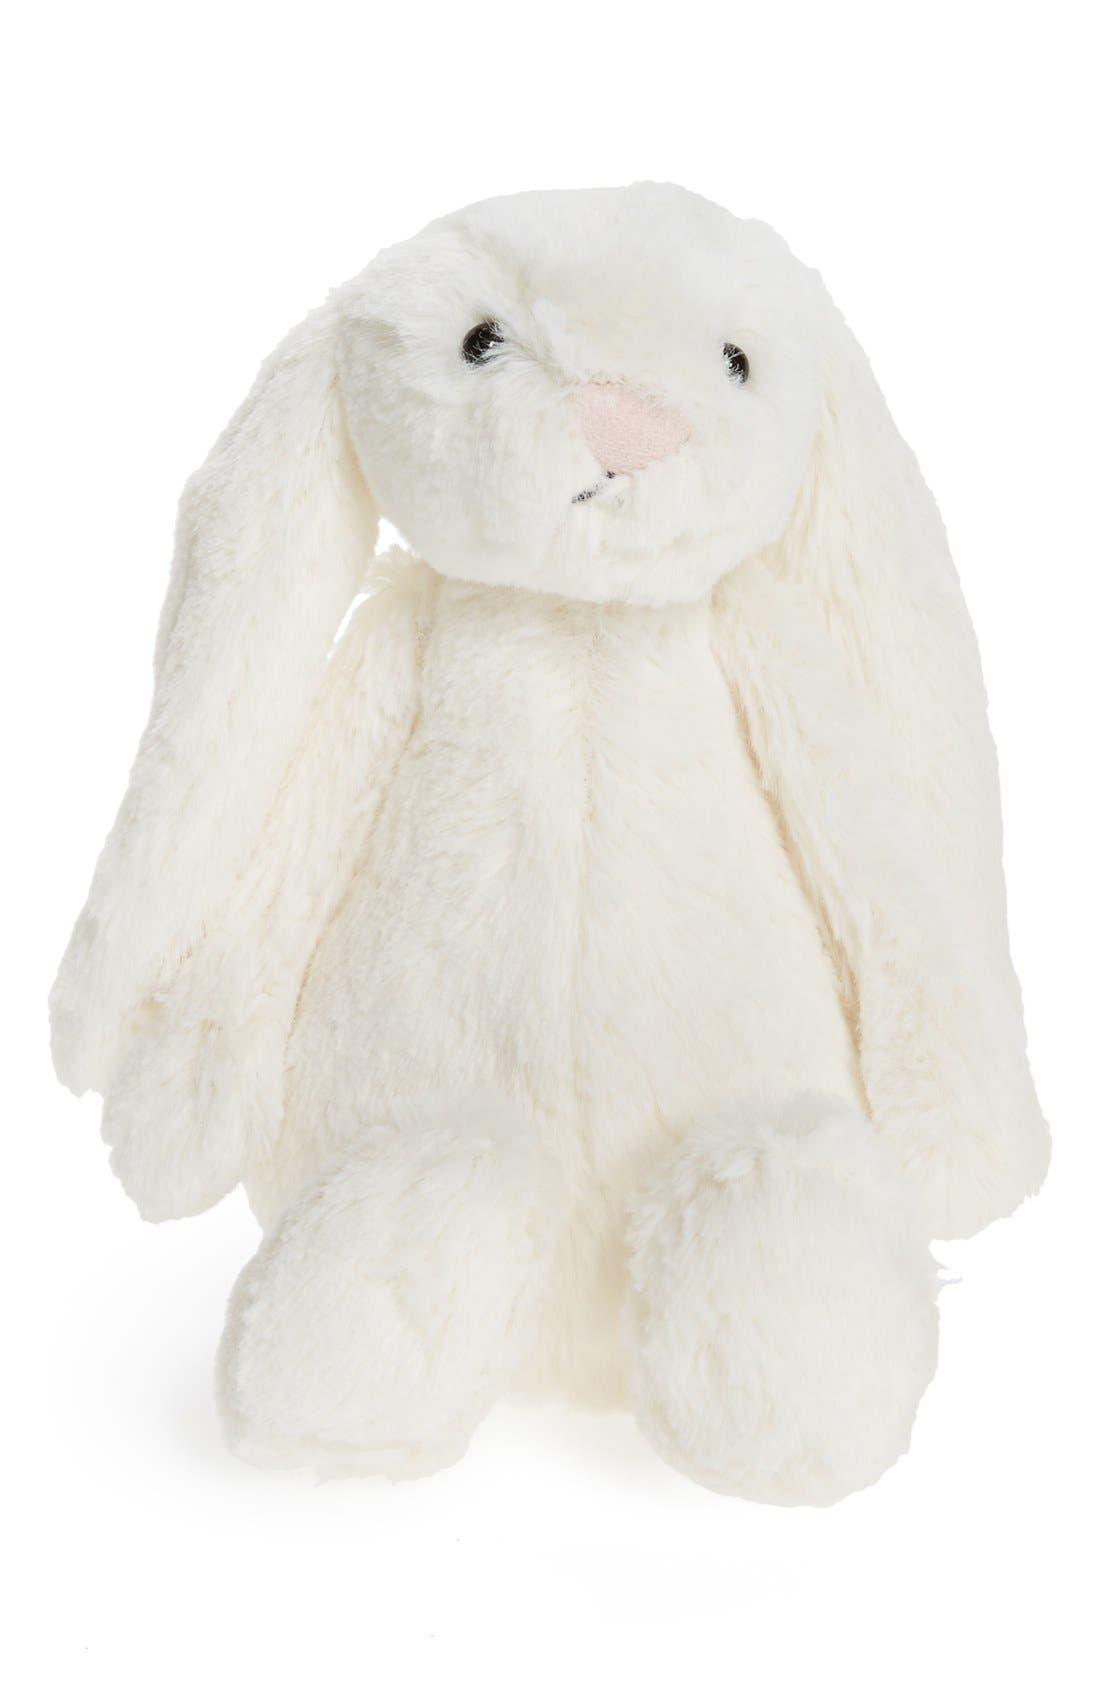 Main Image - Jellycat 'Small Bashful Bunny' Stuffed Animal